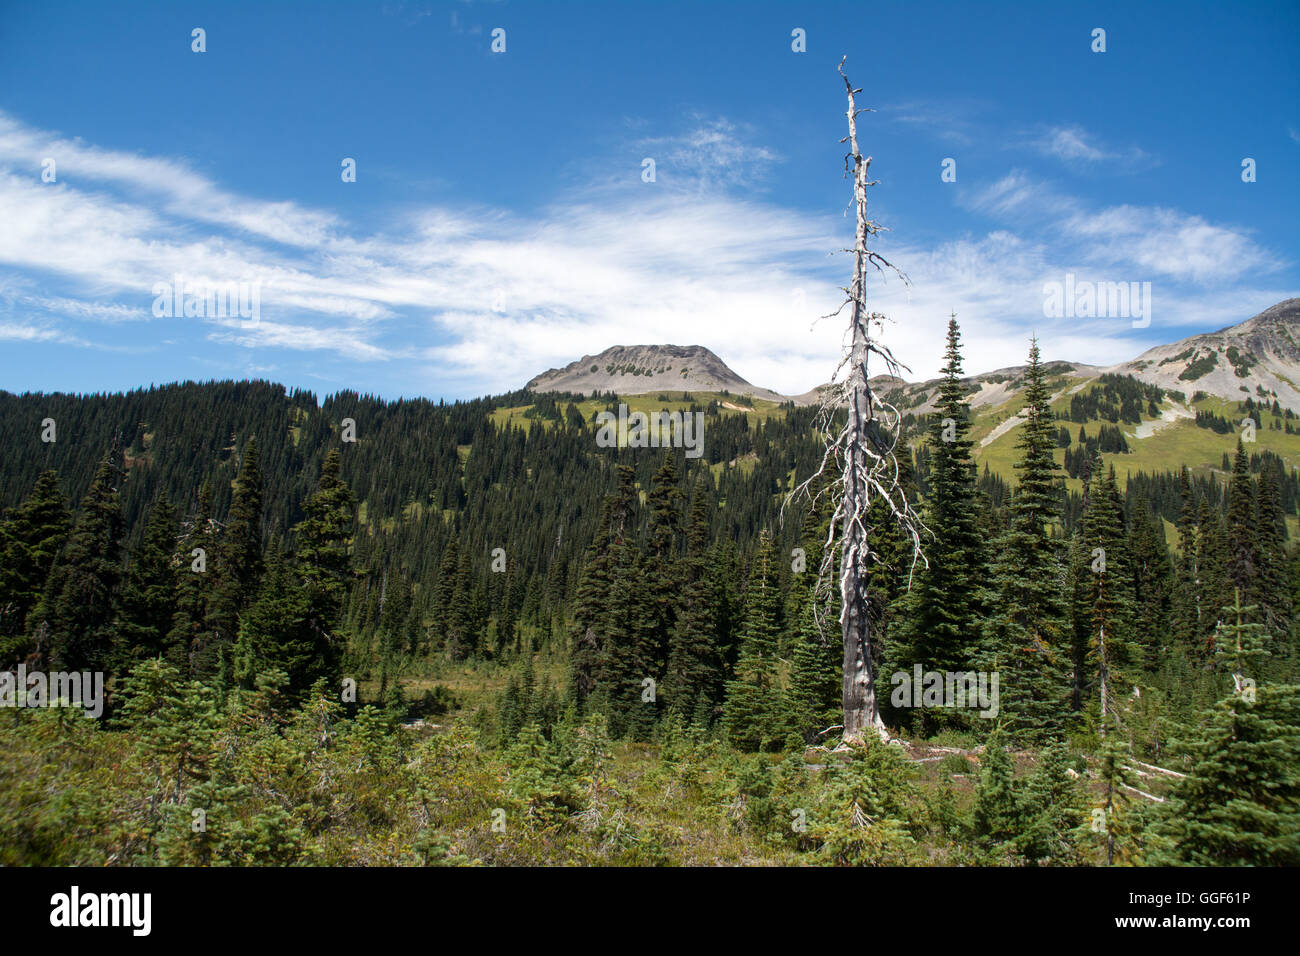 A dead tree in a mountain meadow and landscape in the sub-alpine area of Garibaldi Provincial Park, British Columbia, - Stock Image